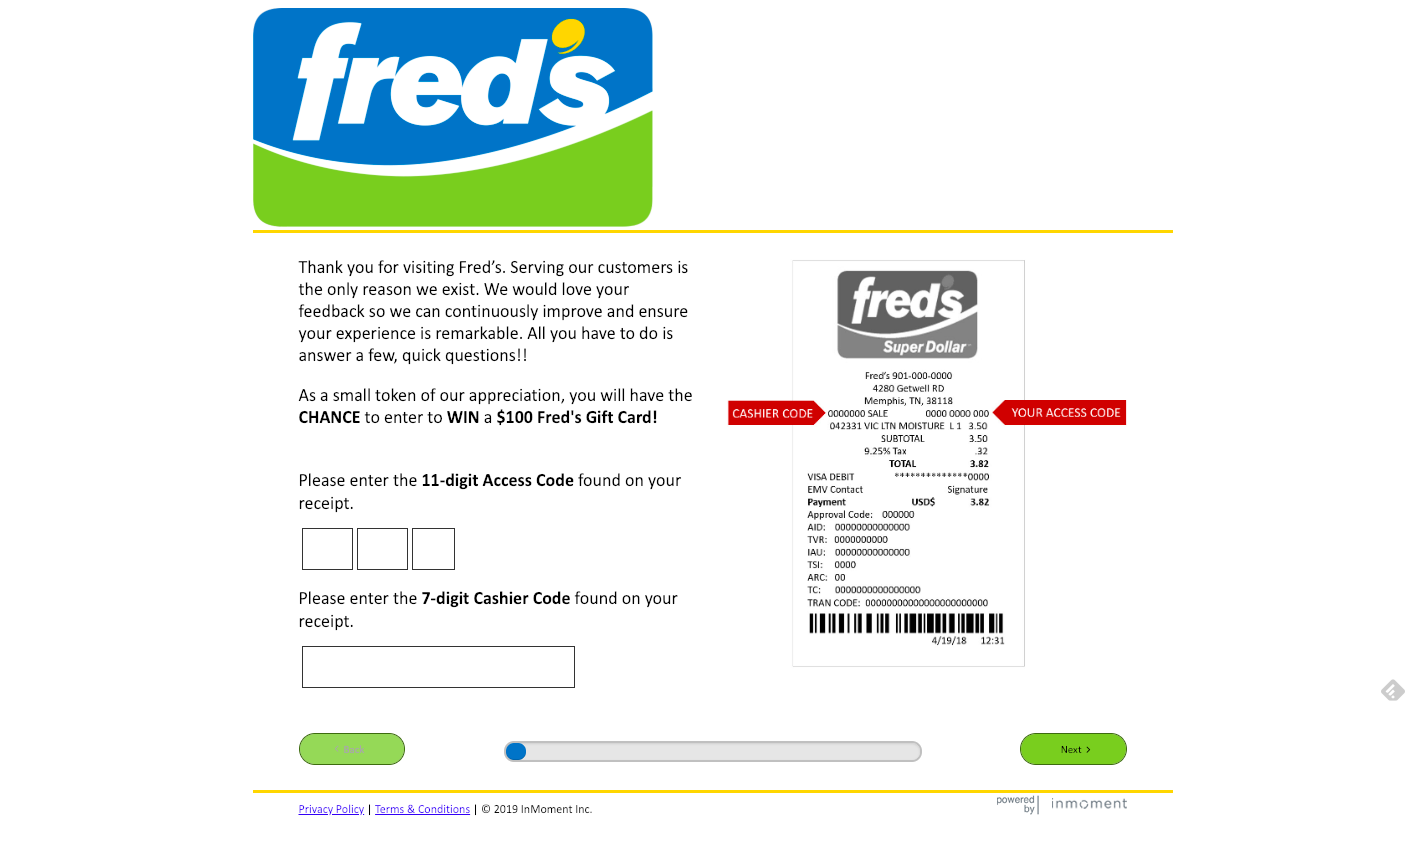 c92f2c582 fredsfeedback Archives - Online Tutorial Guide